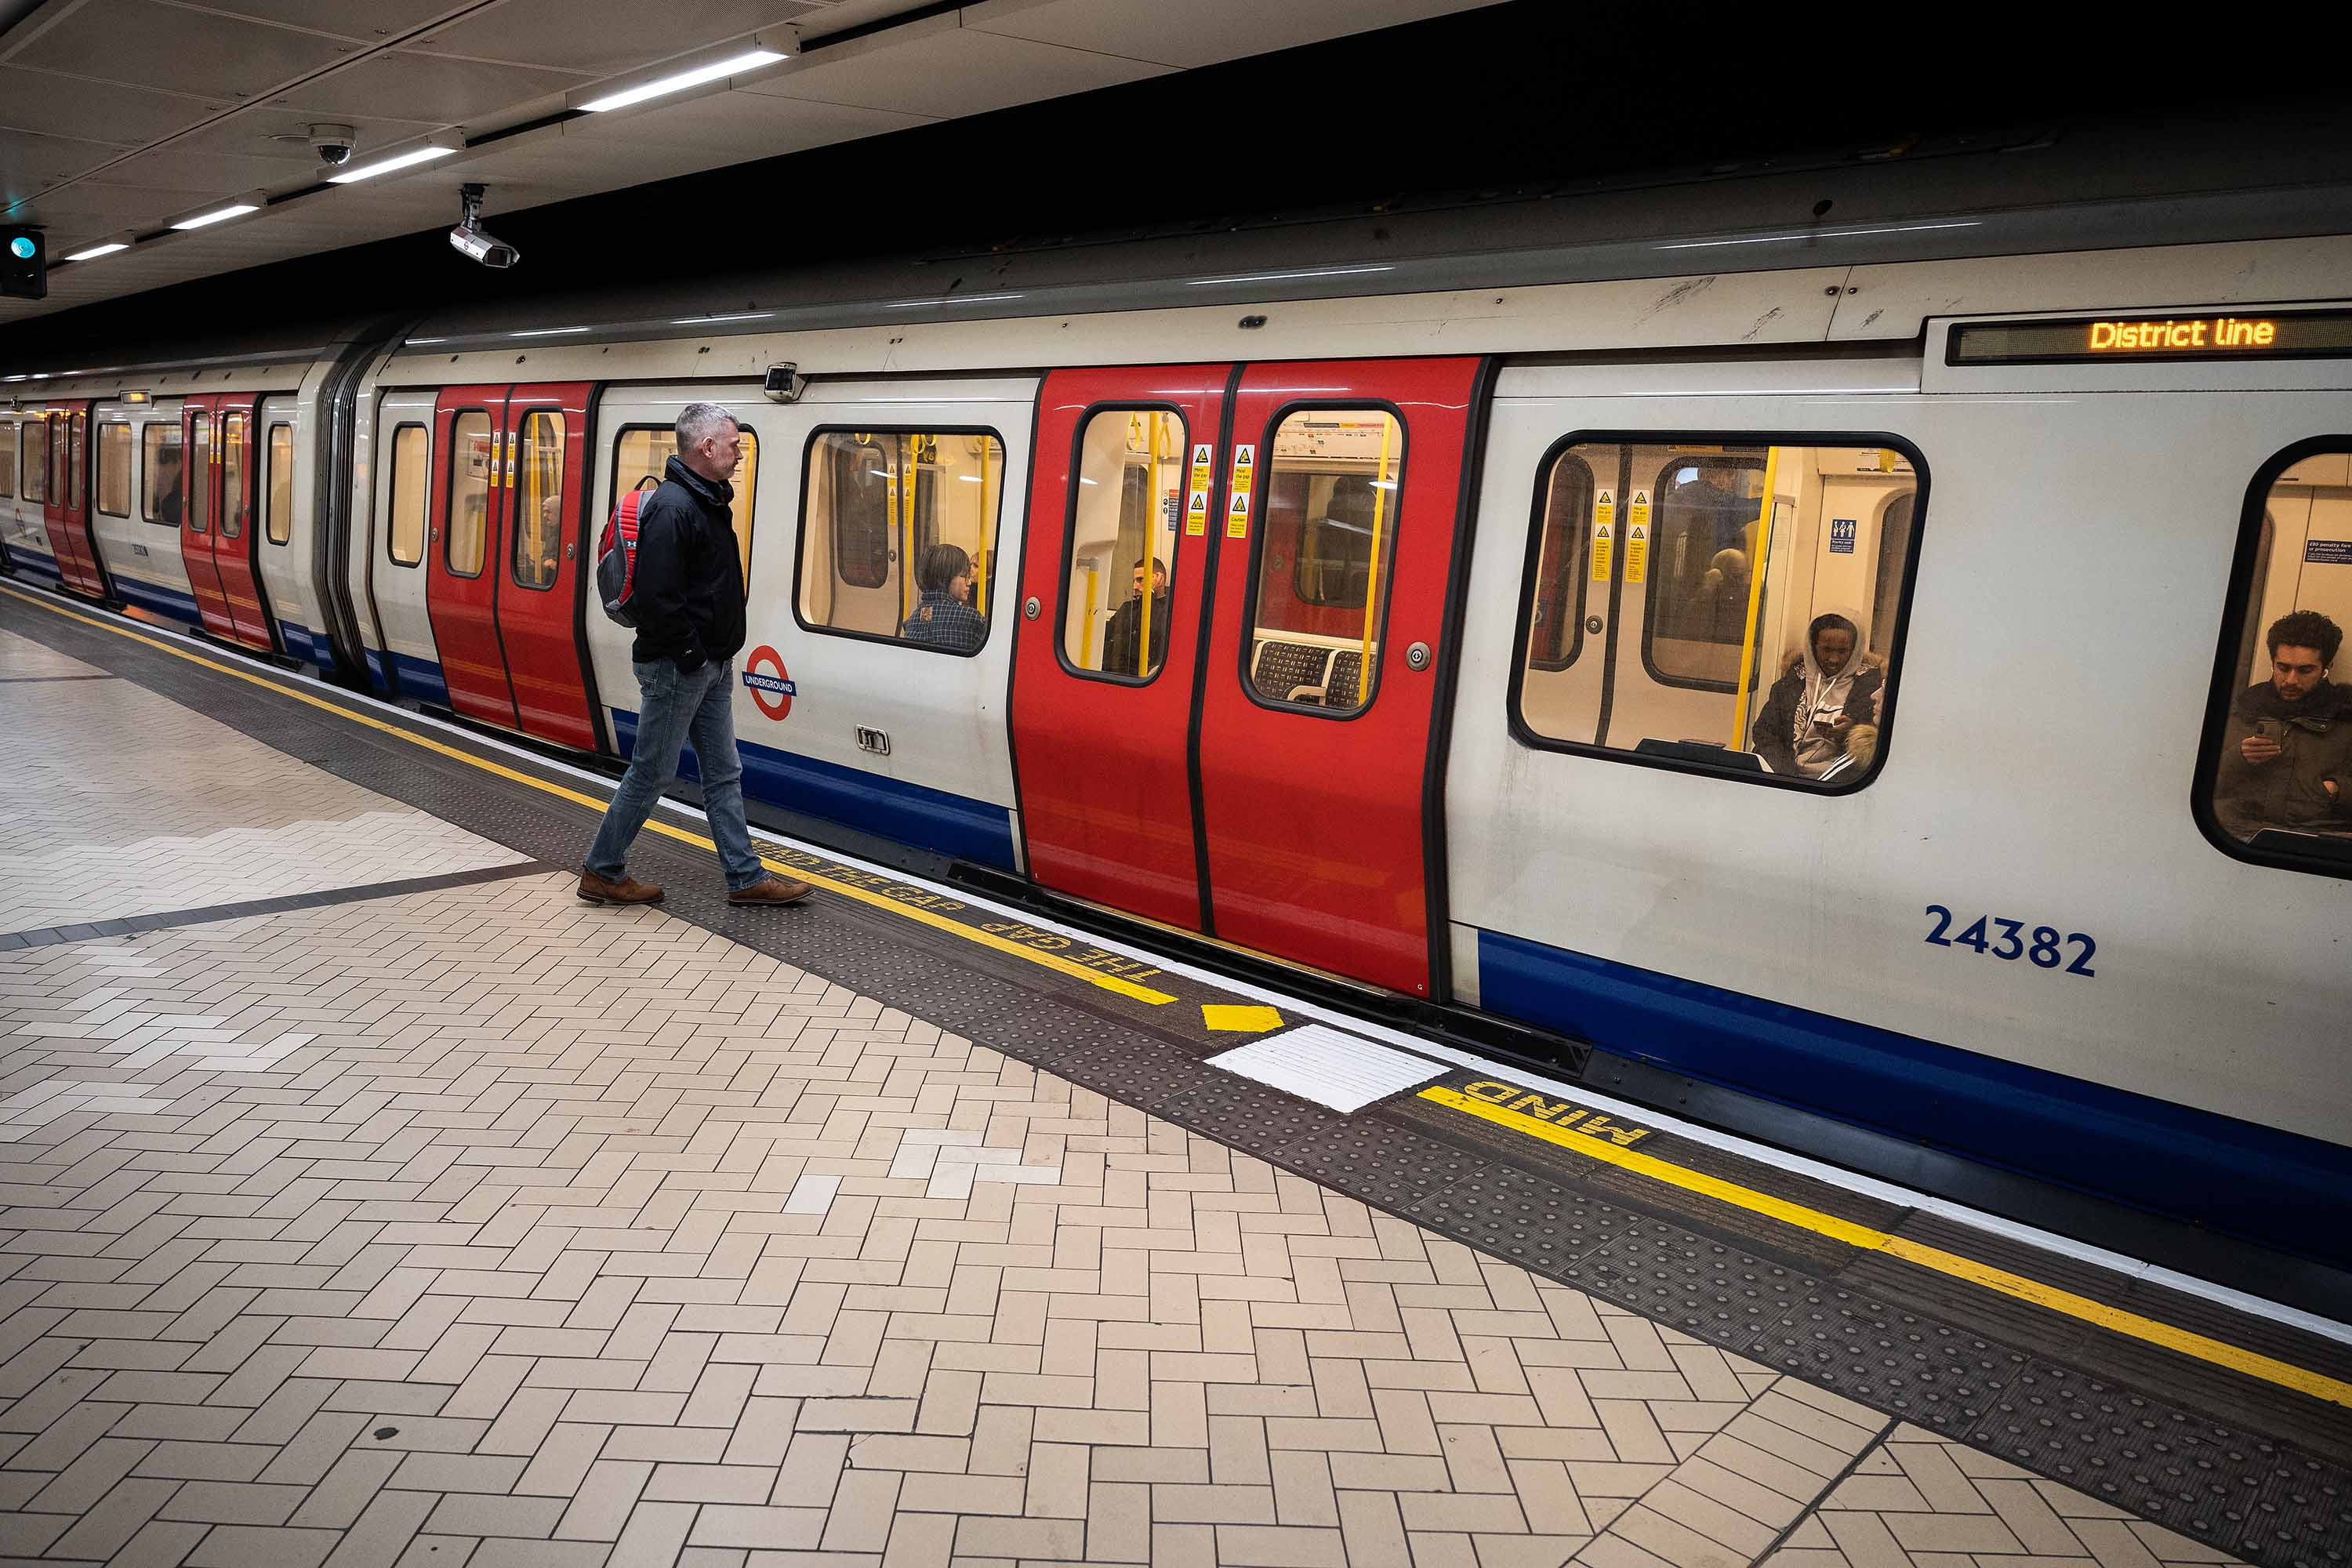 A commuter boards an underground train during rush-hour in London, England, on March 18.